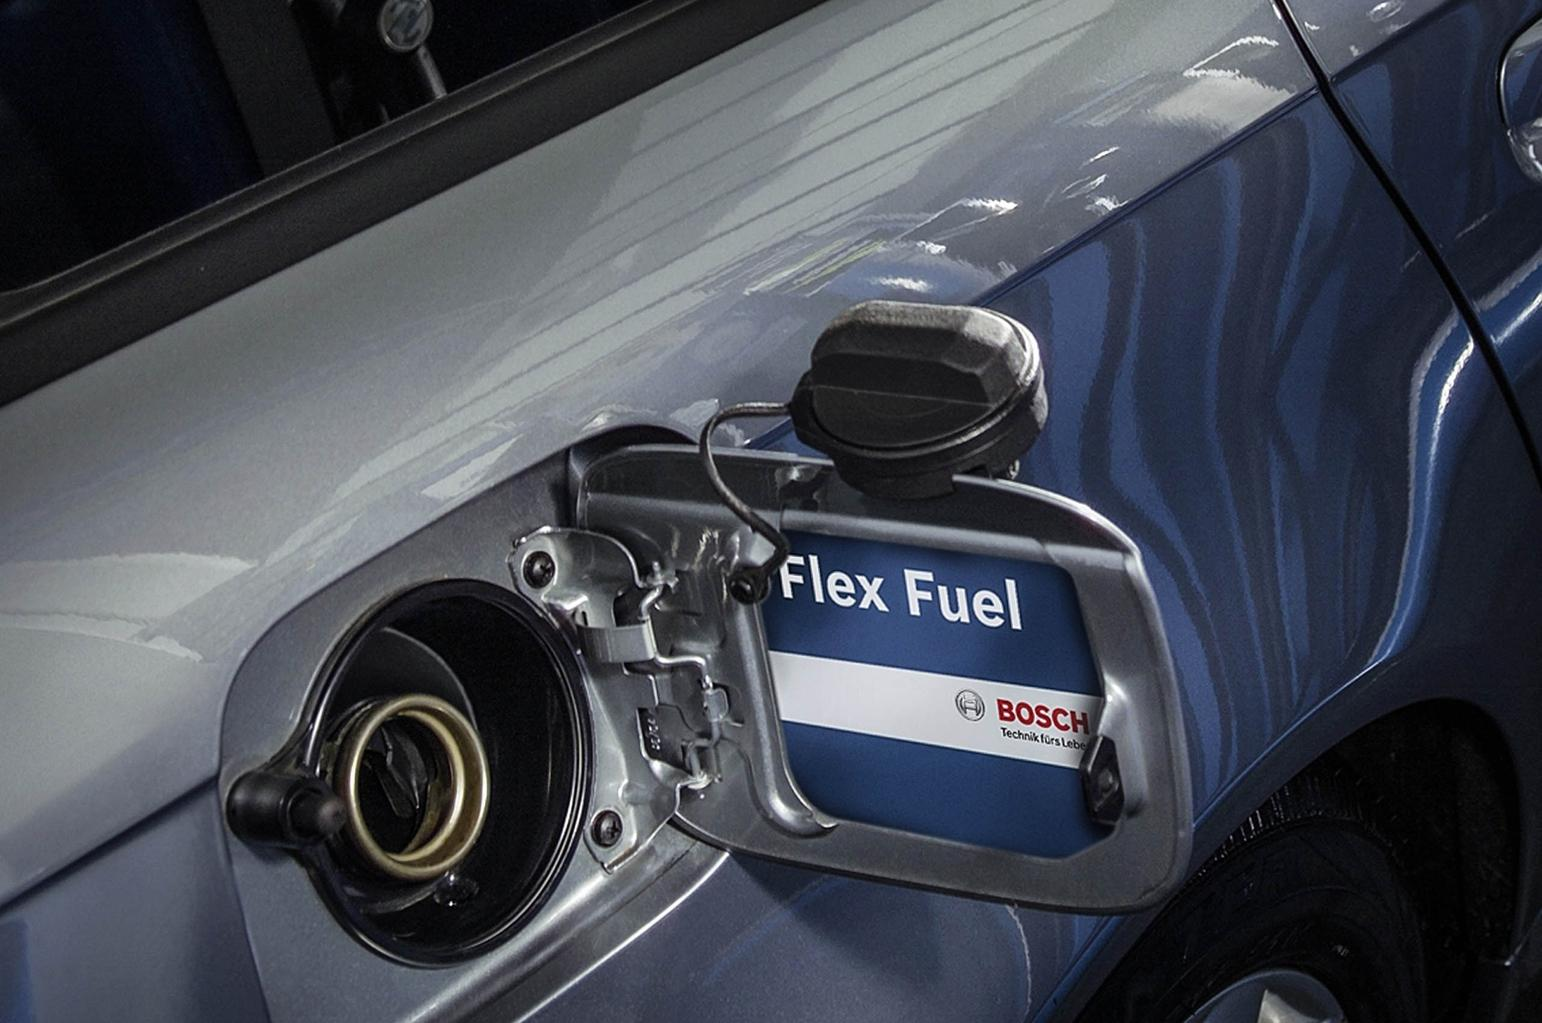 E10 petrol fuel under government consultation